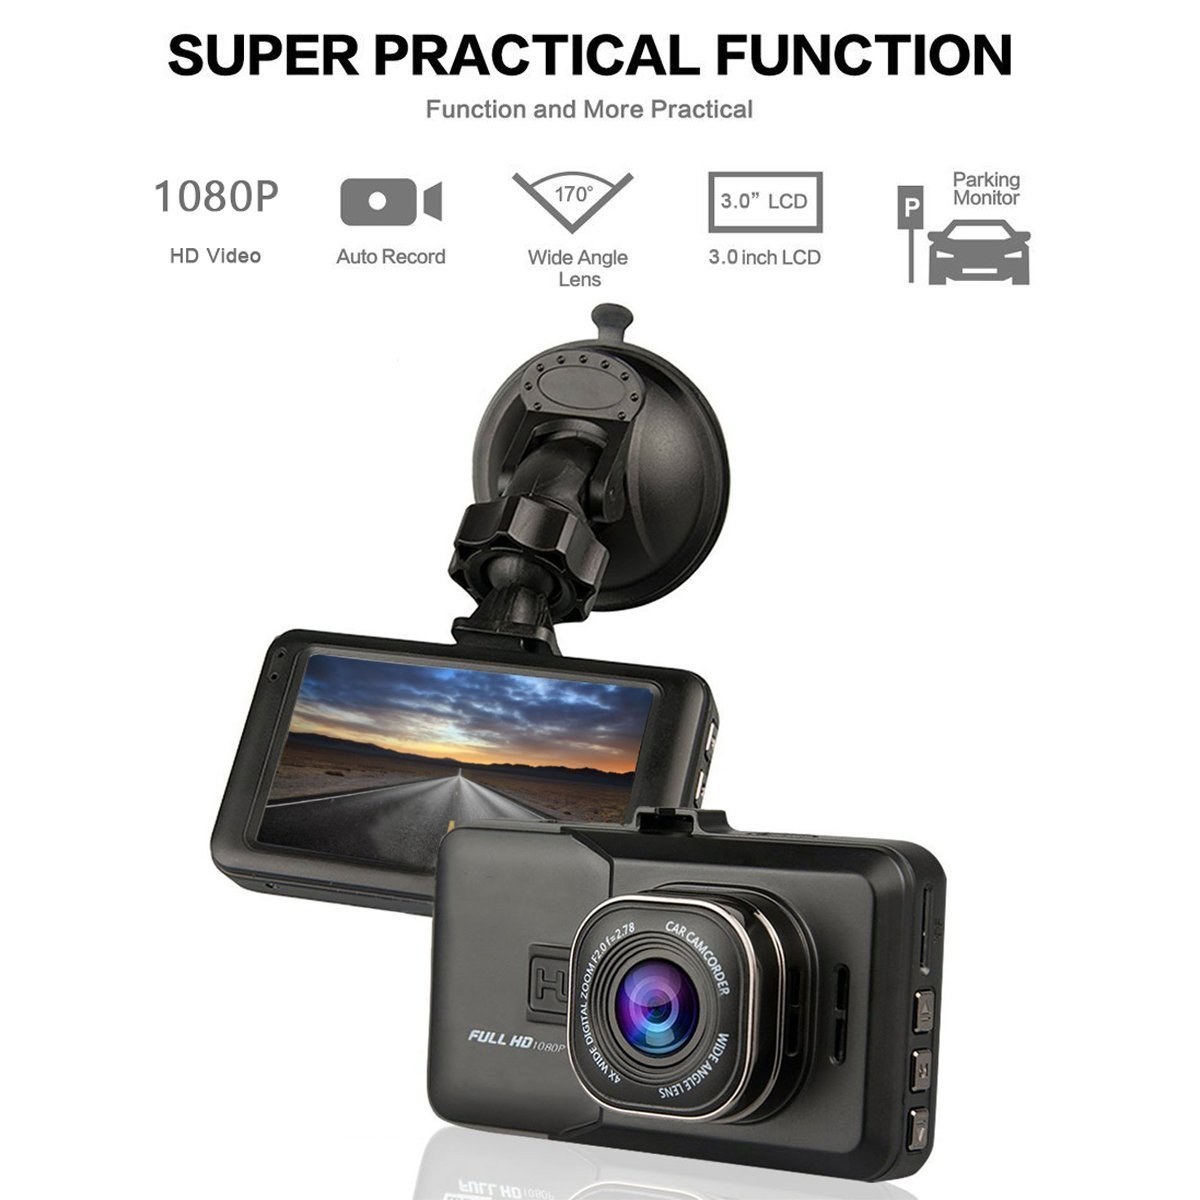 170 Degree Wide Angle in CAR//Night Vision//G-Sensor//WDR//Loop Recording Include MICROSD➕ ➕ ❗Free❗Mobile Stand Dealsplaza Deals Plaza Dash CAM Full HD 1080P CAR DVR Camera Video Recorder Monitor 3.0 INCH